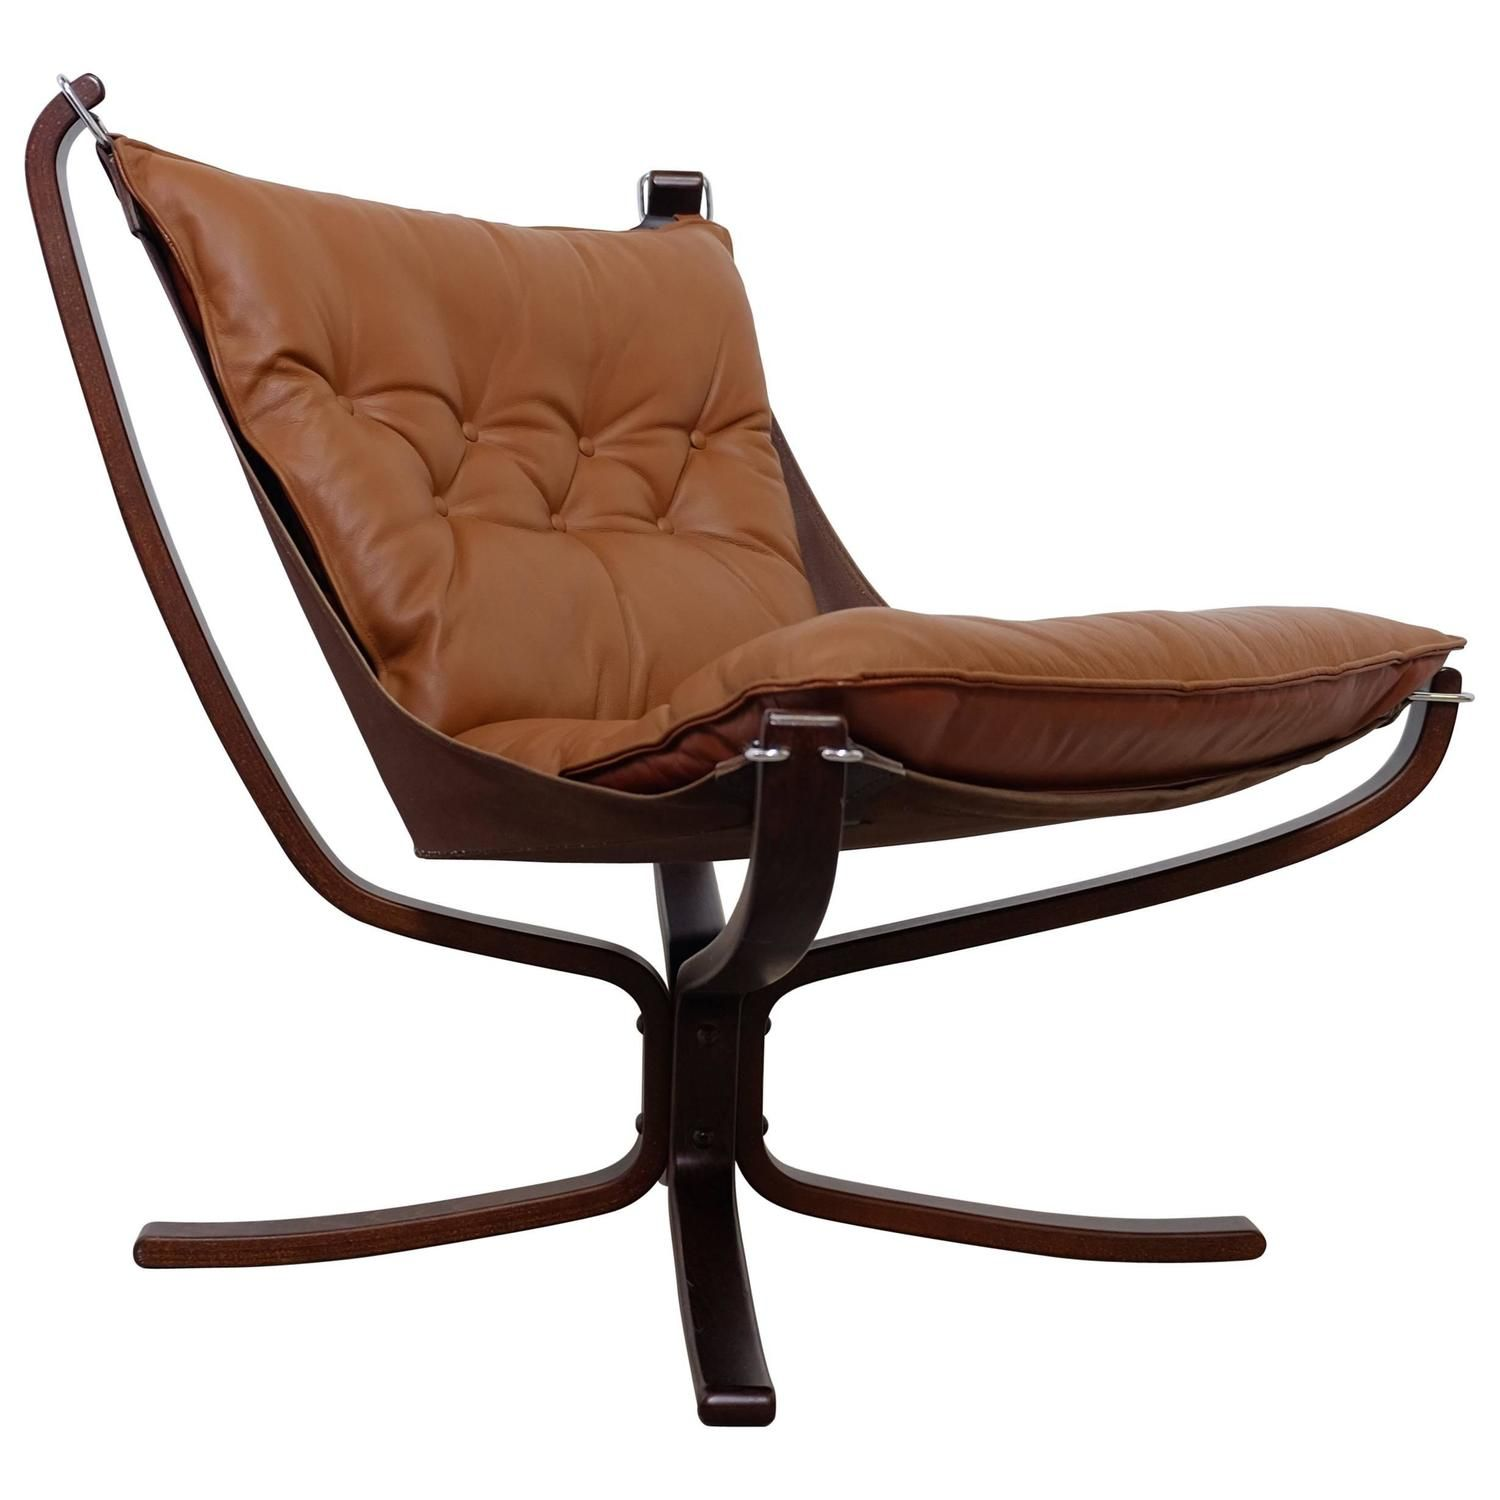 Falcon Chair Falcon Chair By Sigurd Ressell Falcon Chair Chair Sofa Chair